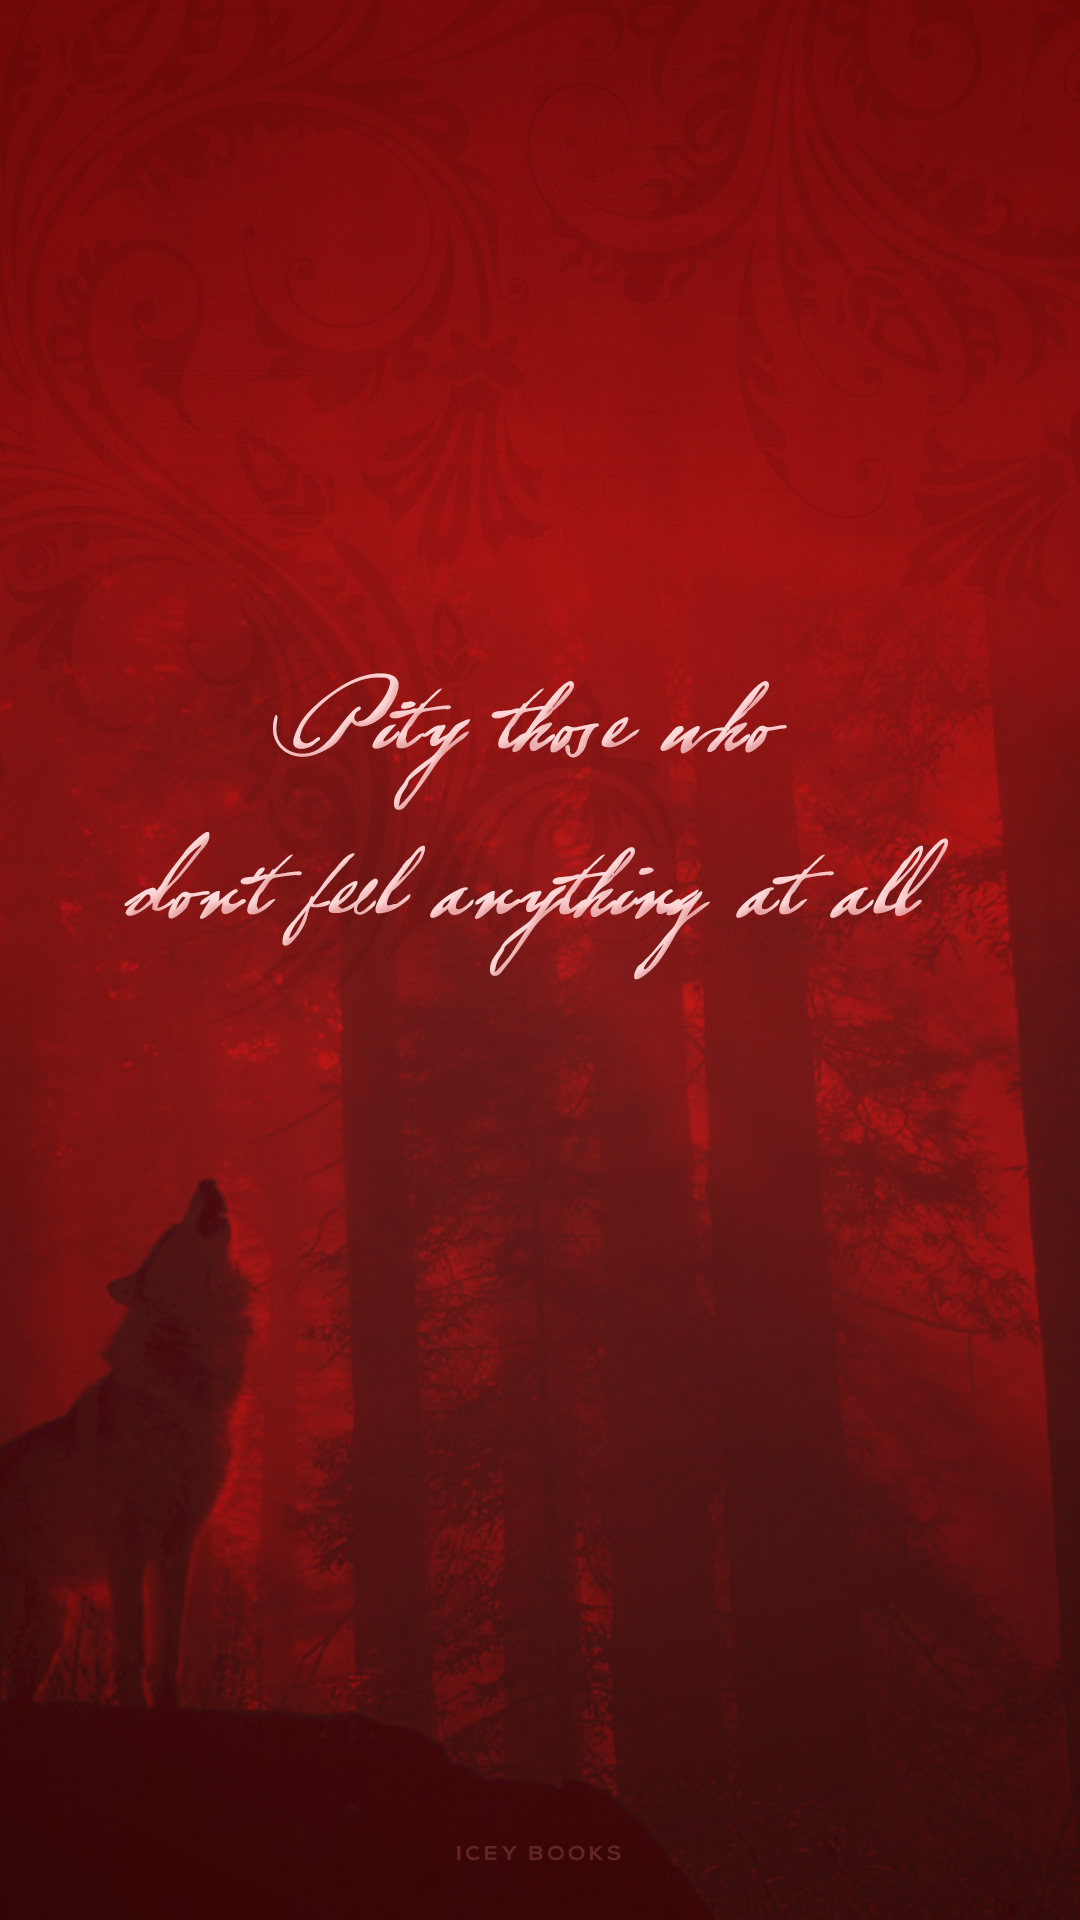 Quote Candy 31 Download A Wallpaper For A Court Of Thorns And Roses By Sarah J Maas And Win